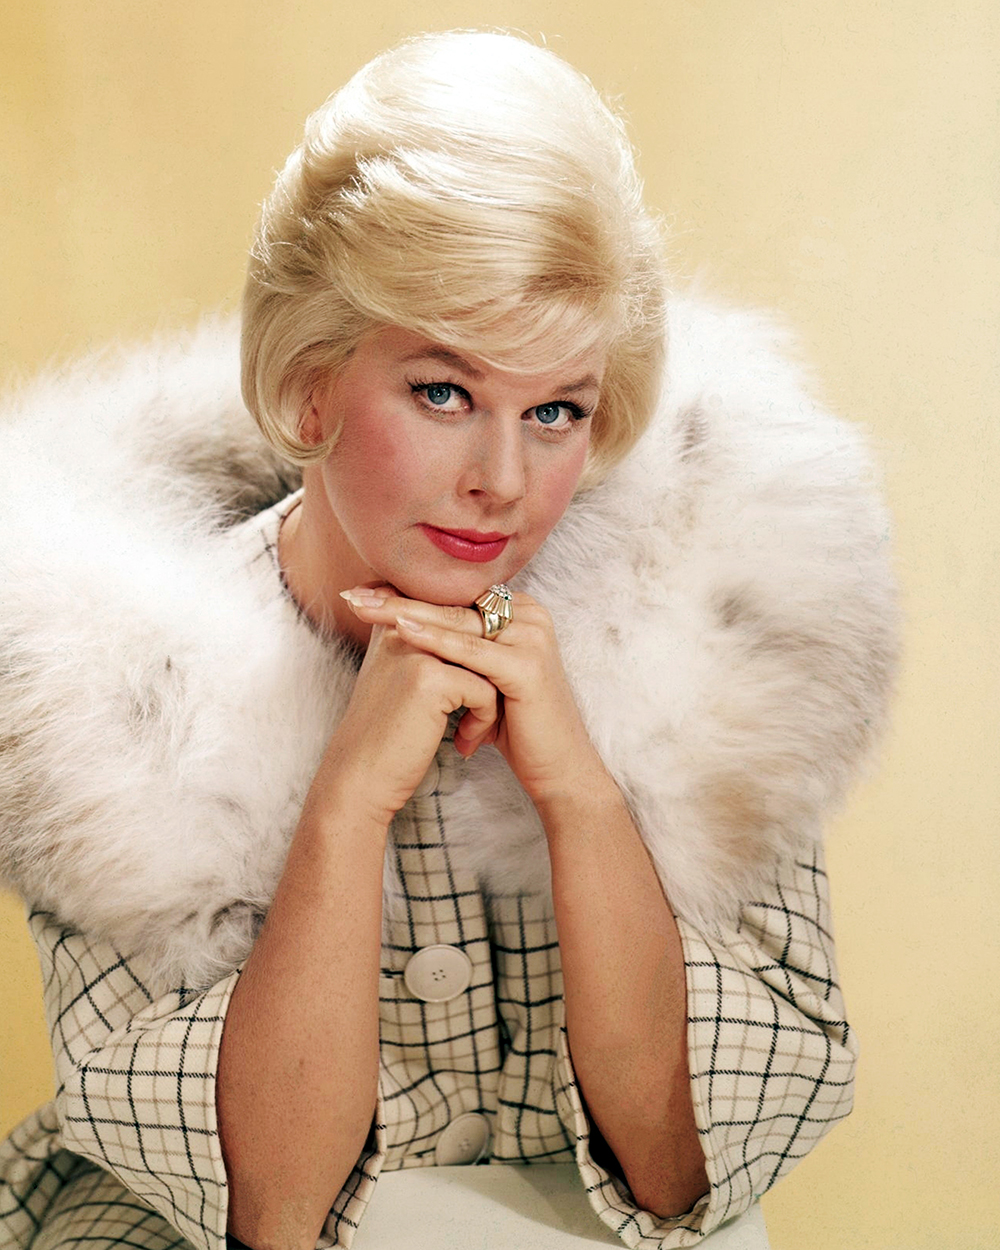 Doris Day is planning 'a quiet birthday at home' with a few close friends, is eager to help animals in need